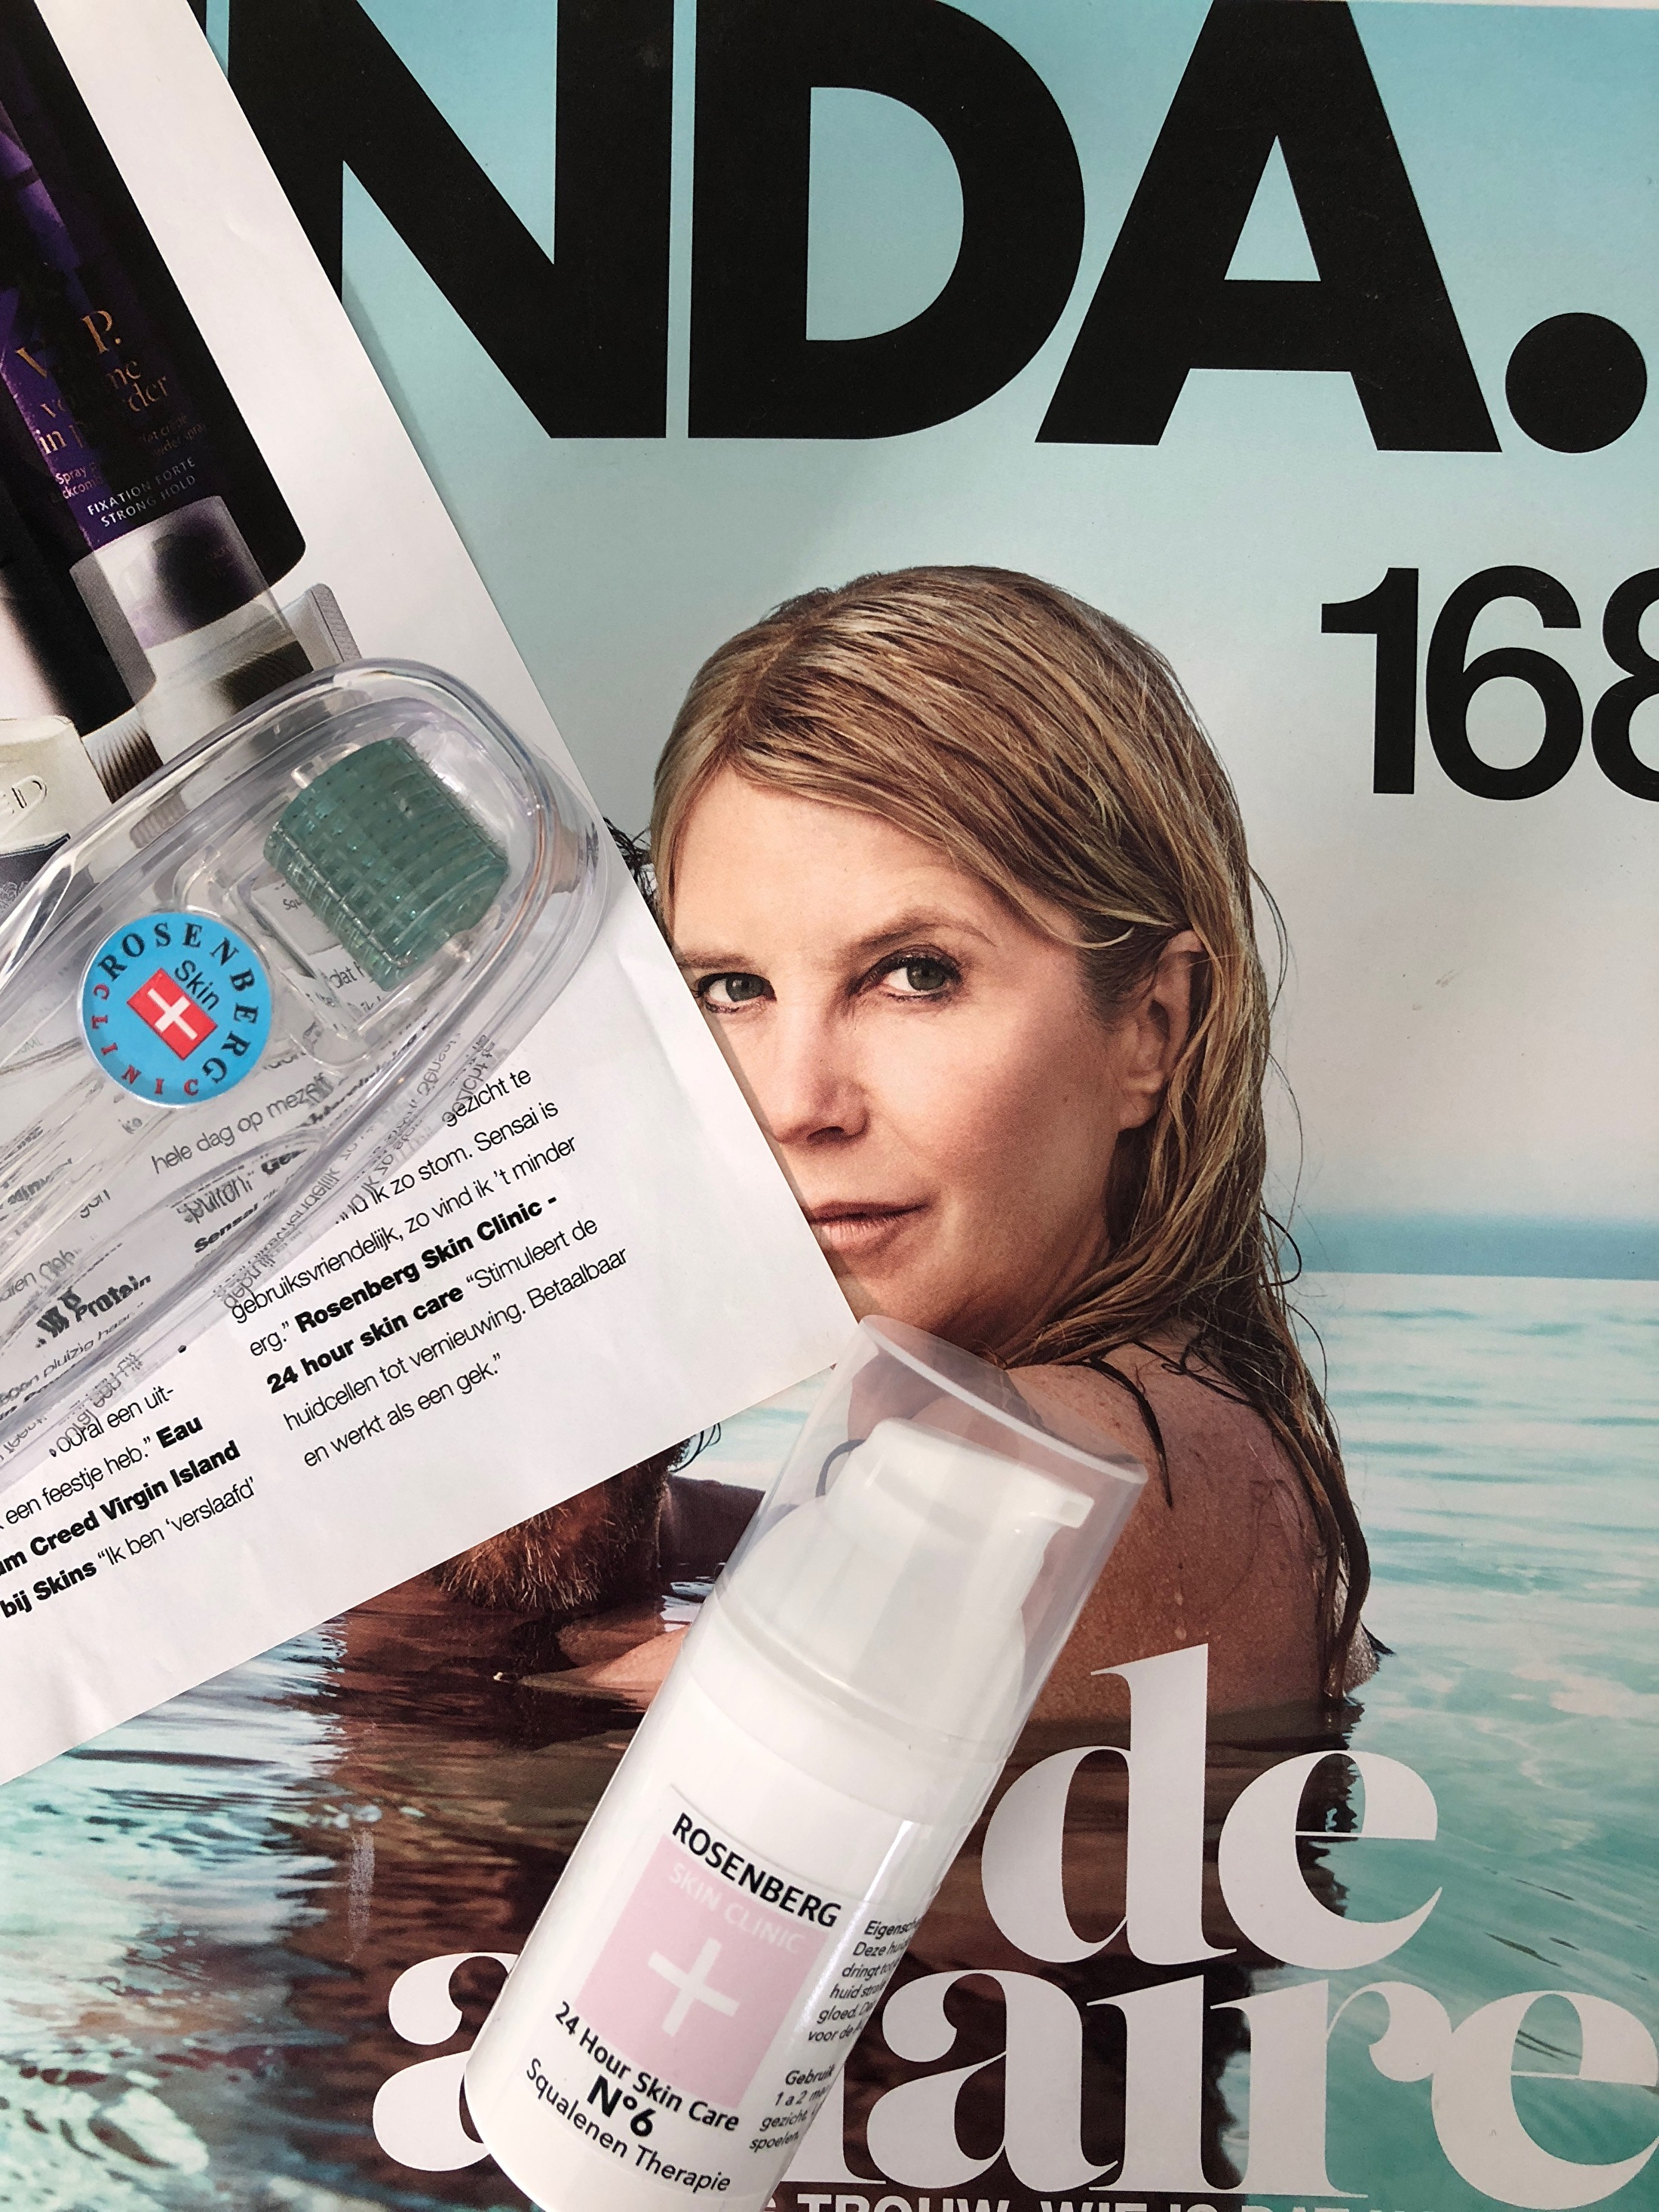 LINDA Magazine enthousiast over Rosenberg Skin Clinic in Blaricum